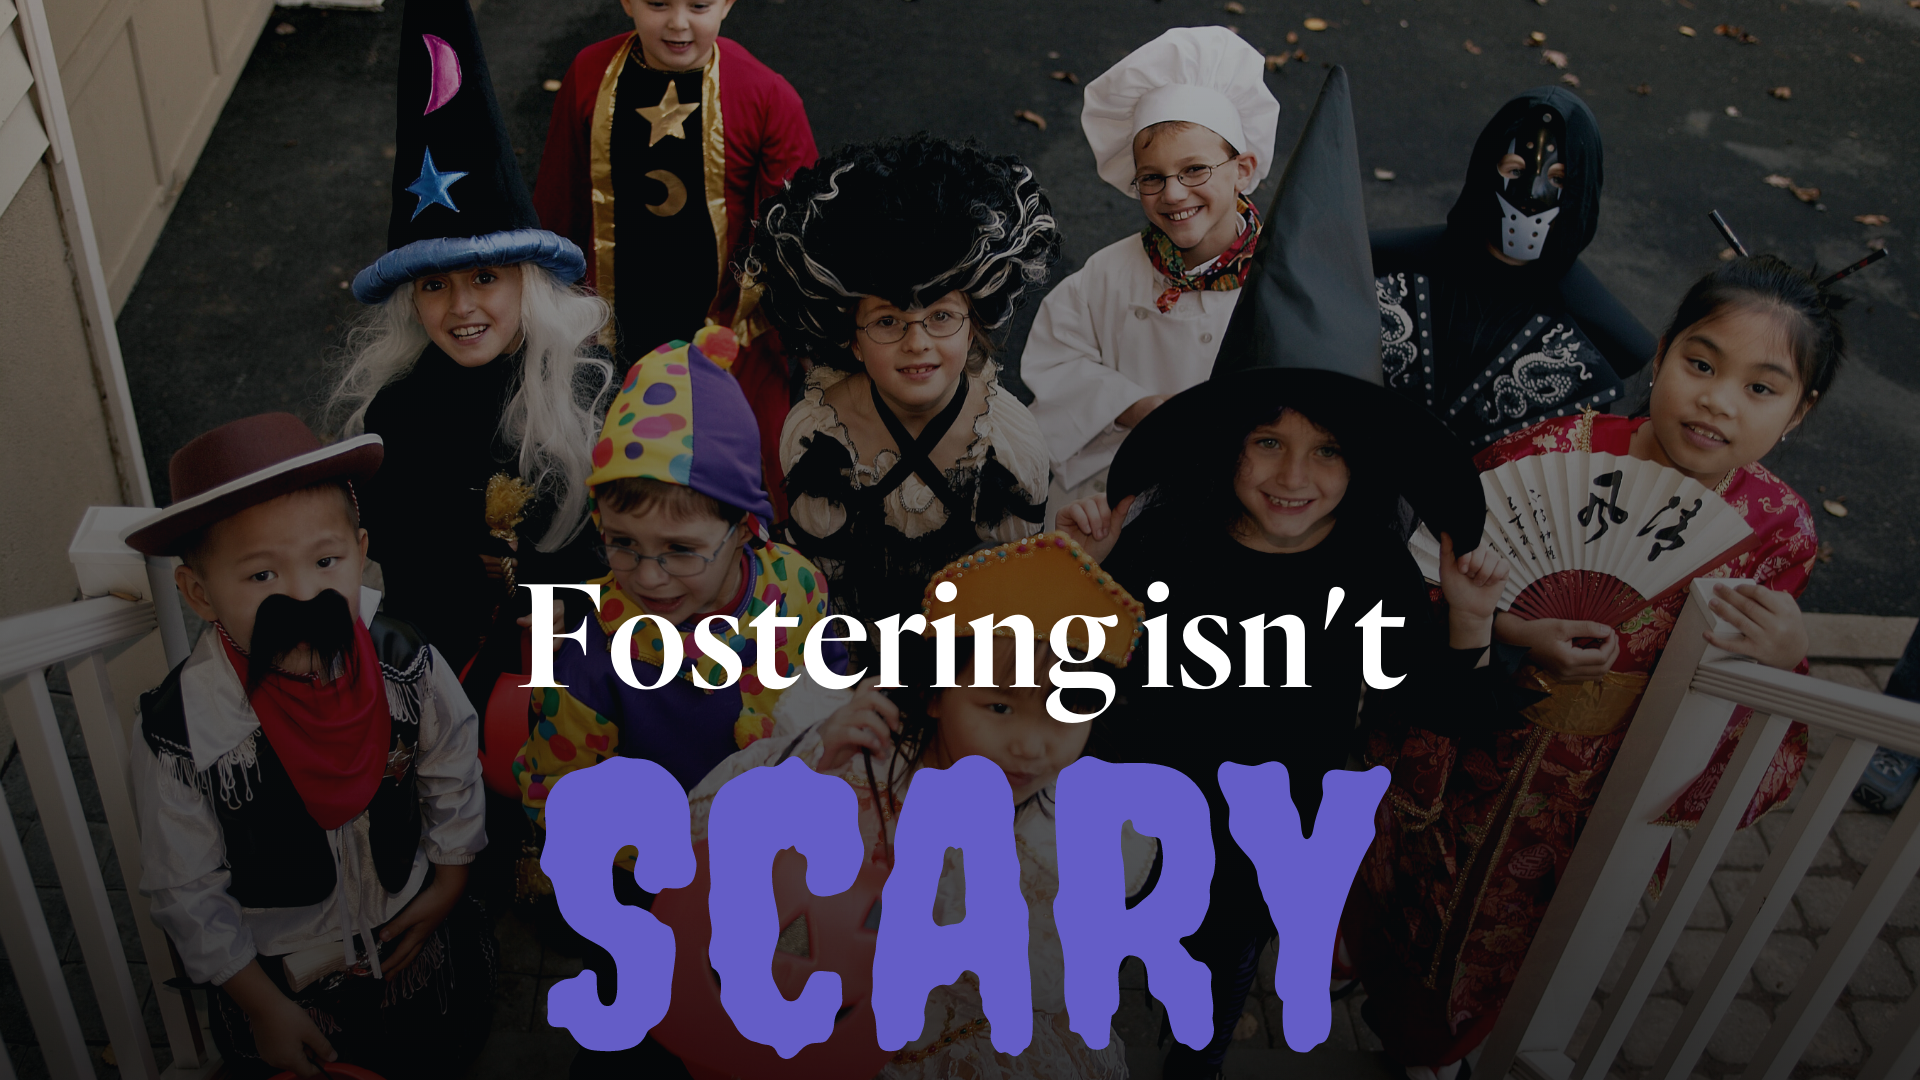 Fostering Isn't Scary!